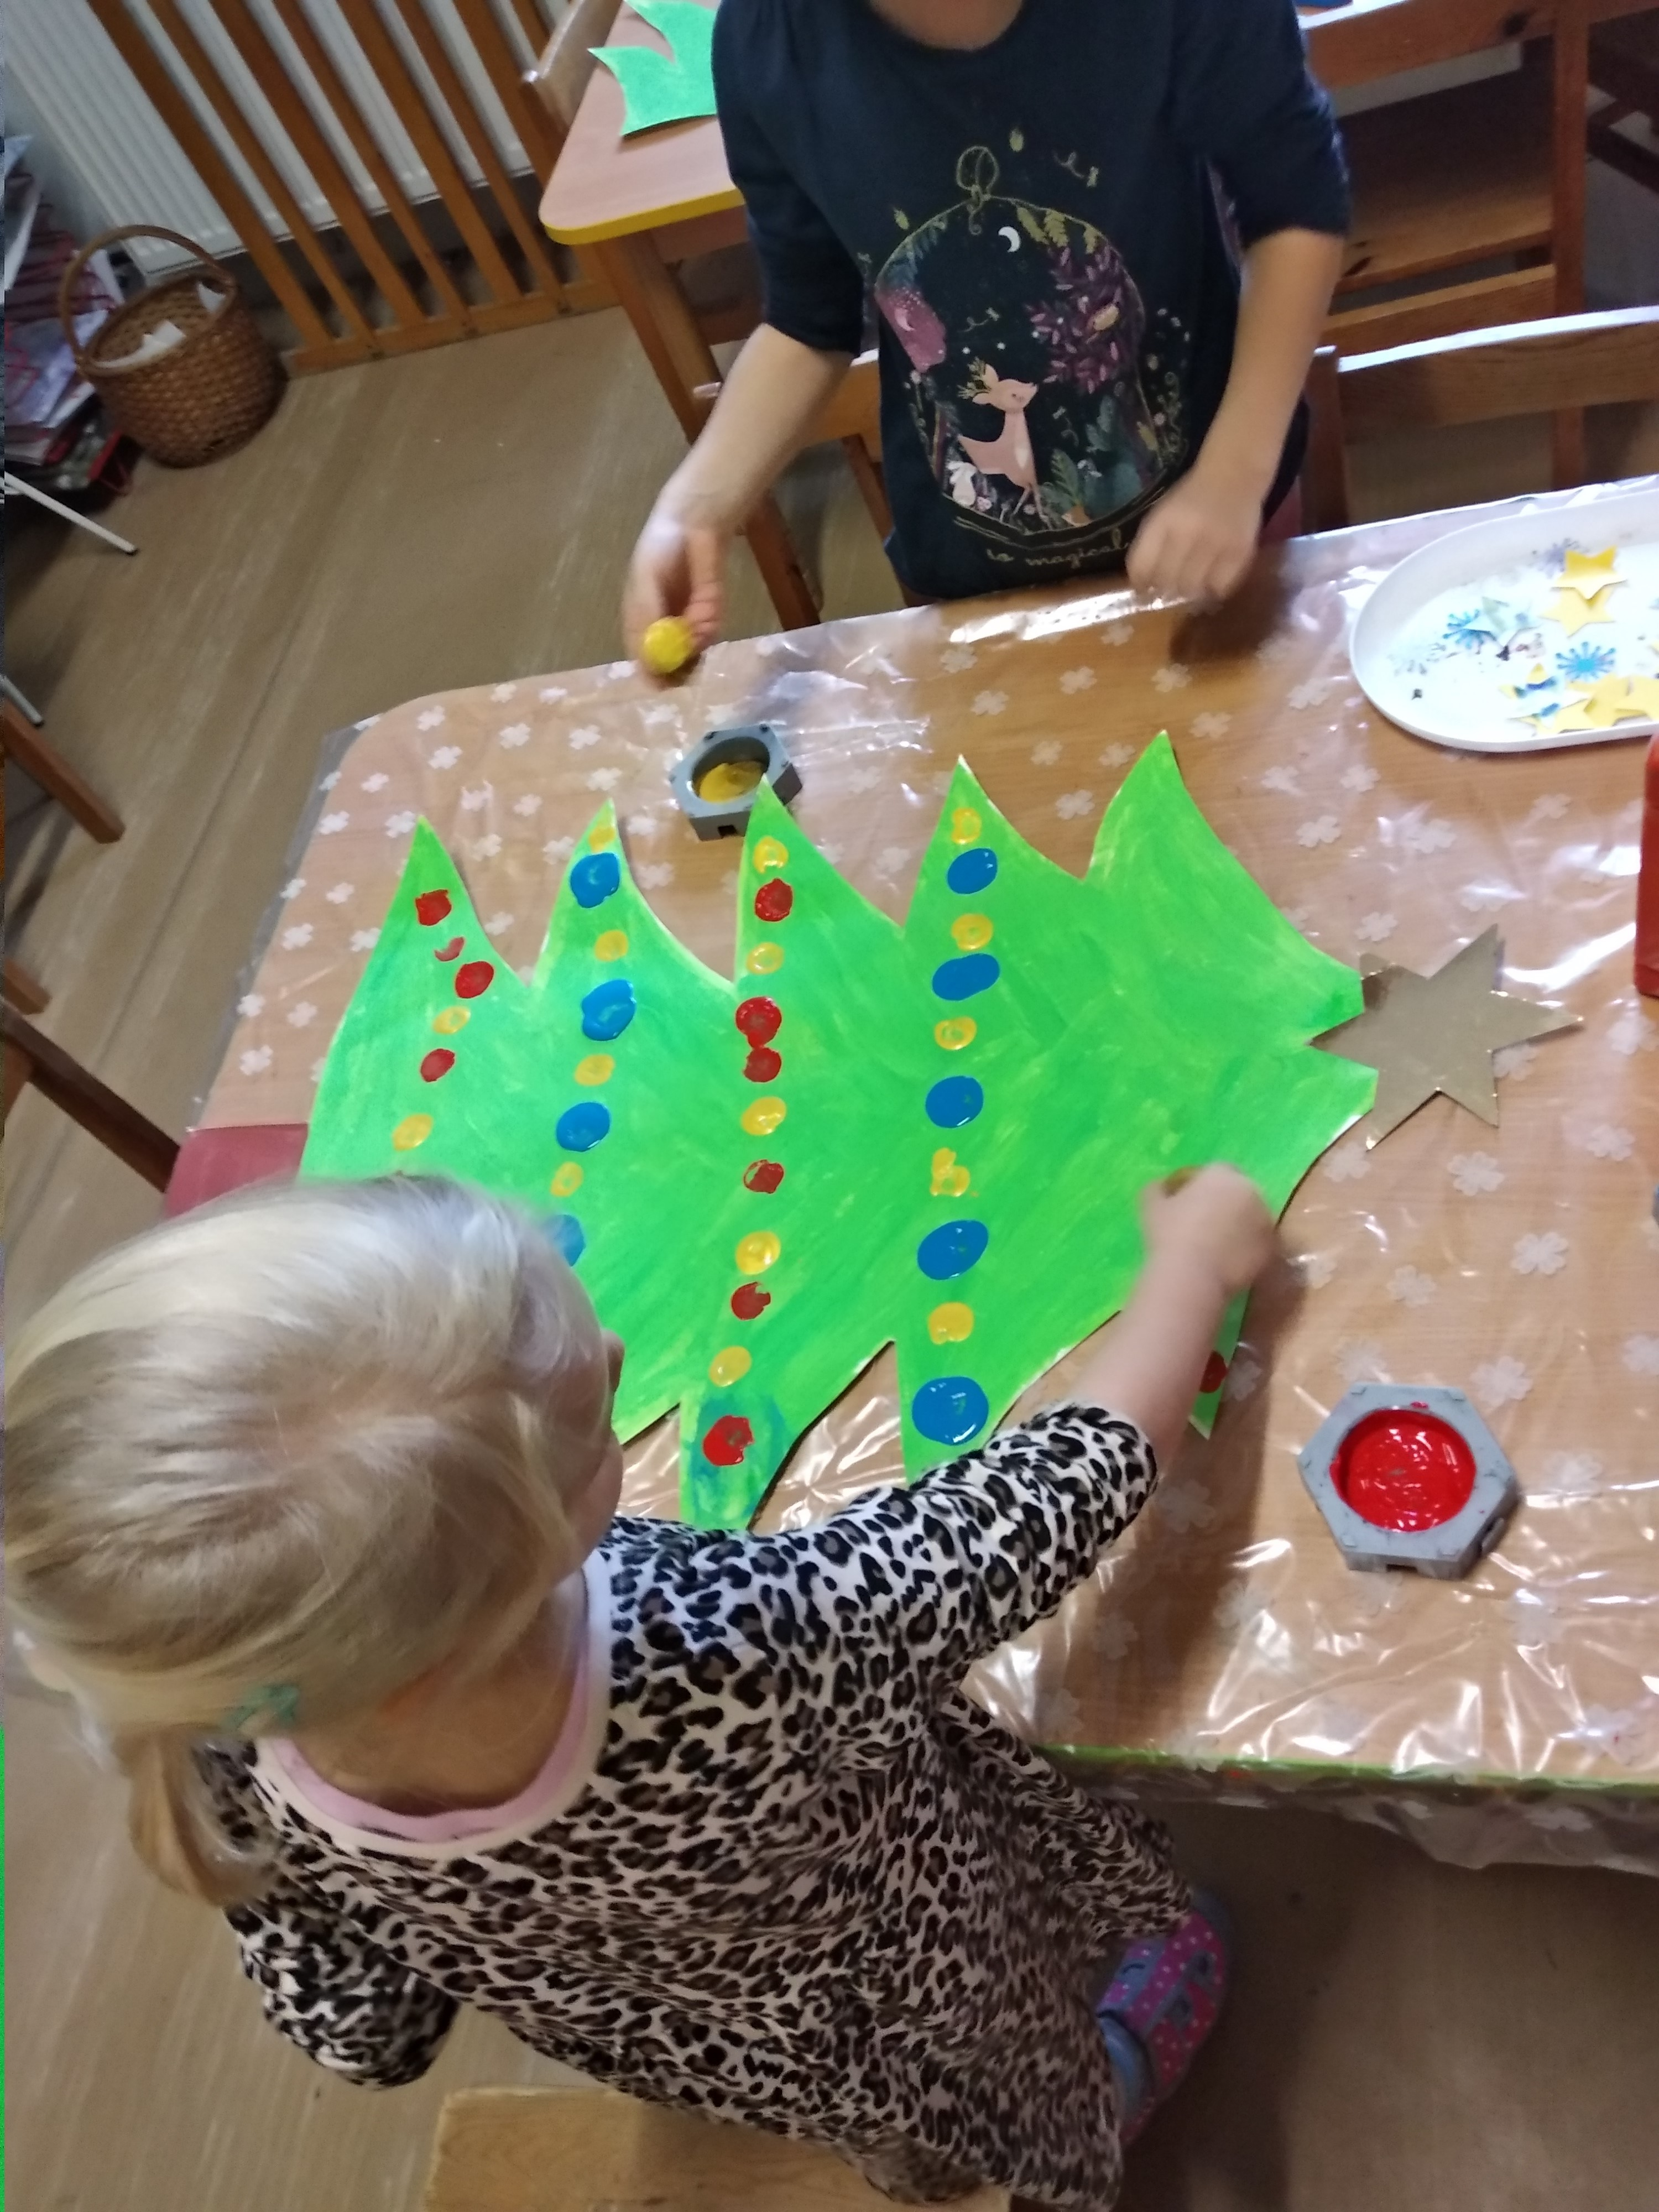 IMG_20201127_101543_HHT